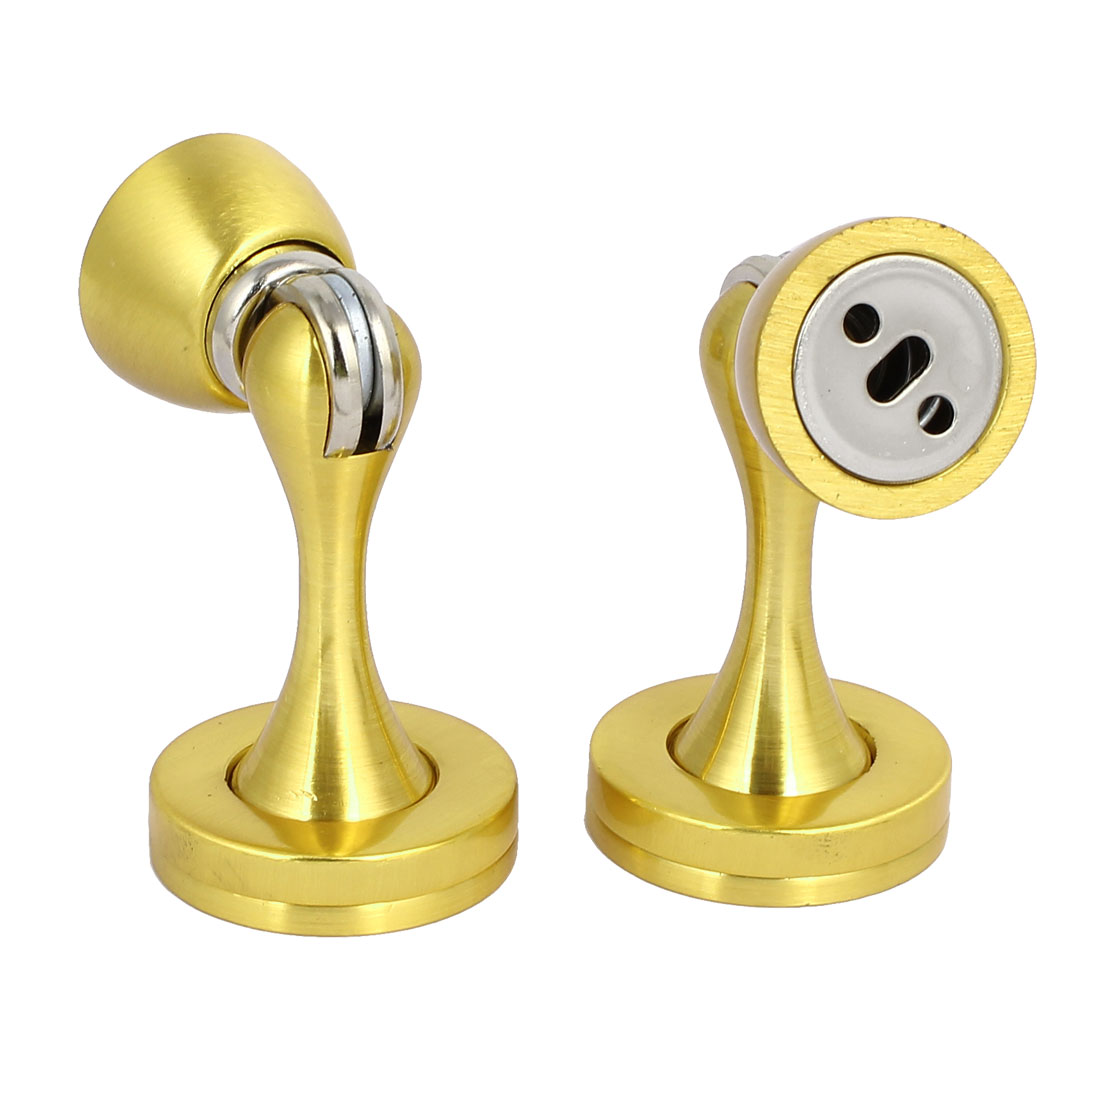 Washroom Kitchen Door Metal Magnetic Catches Stopper Gold Tone 45mmx75mm 2pcs